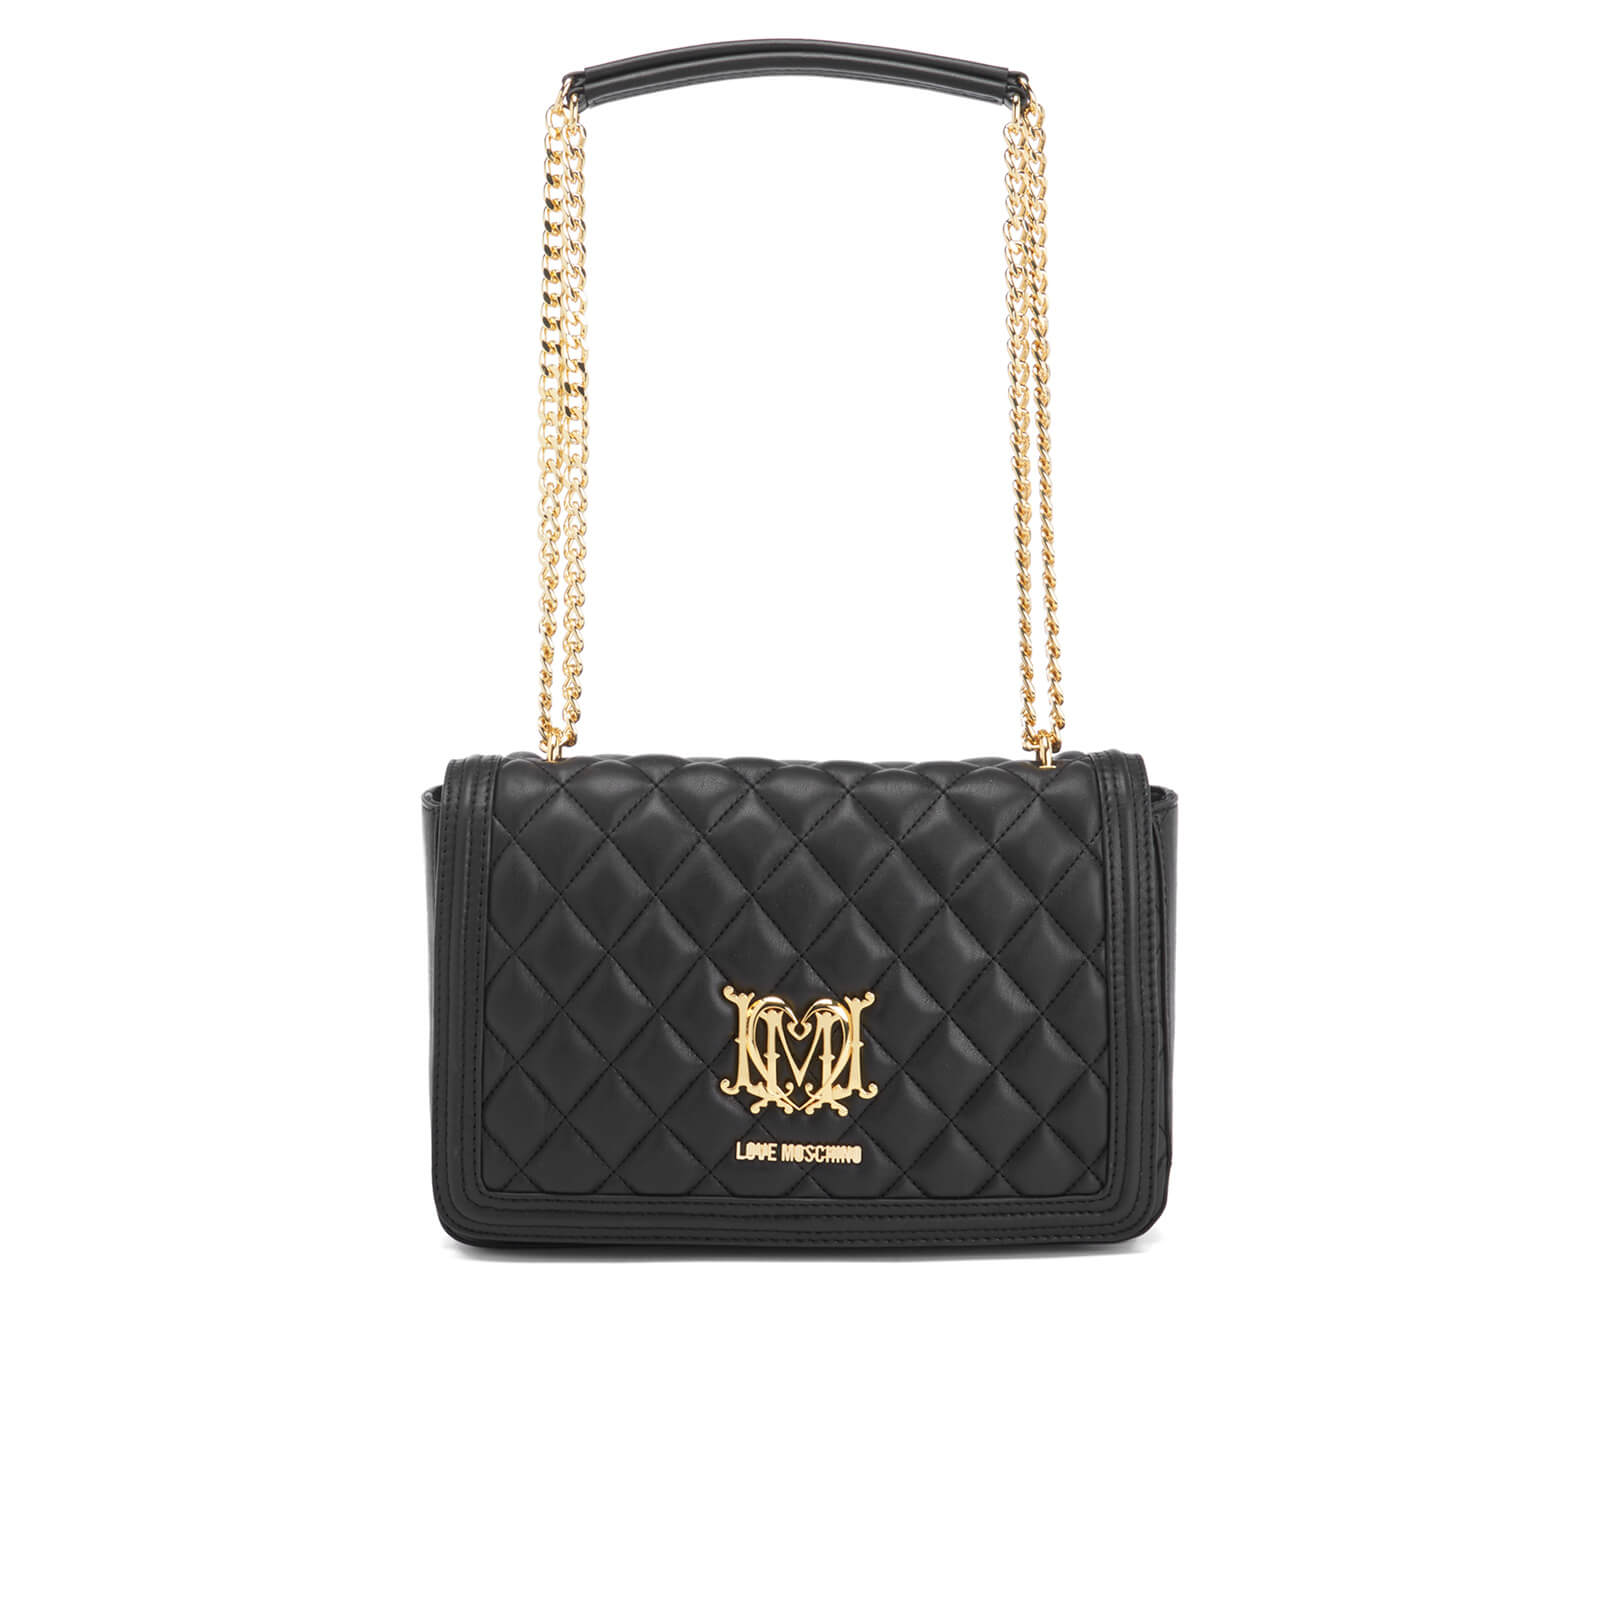 dadf40a56d4c Love Moschino Women s Quilted Chain Tote Bag - Black - Free UK Delivery  over £50